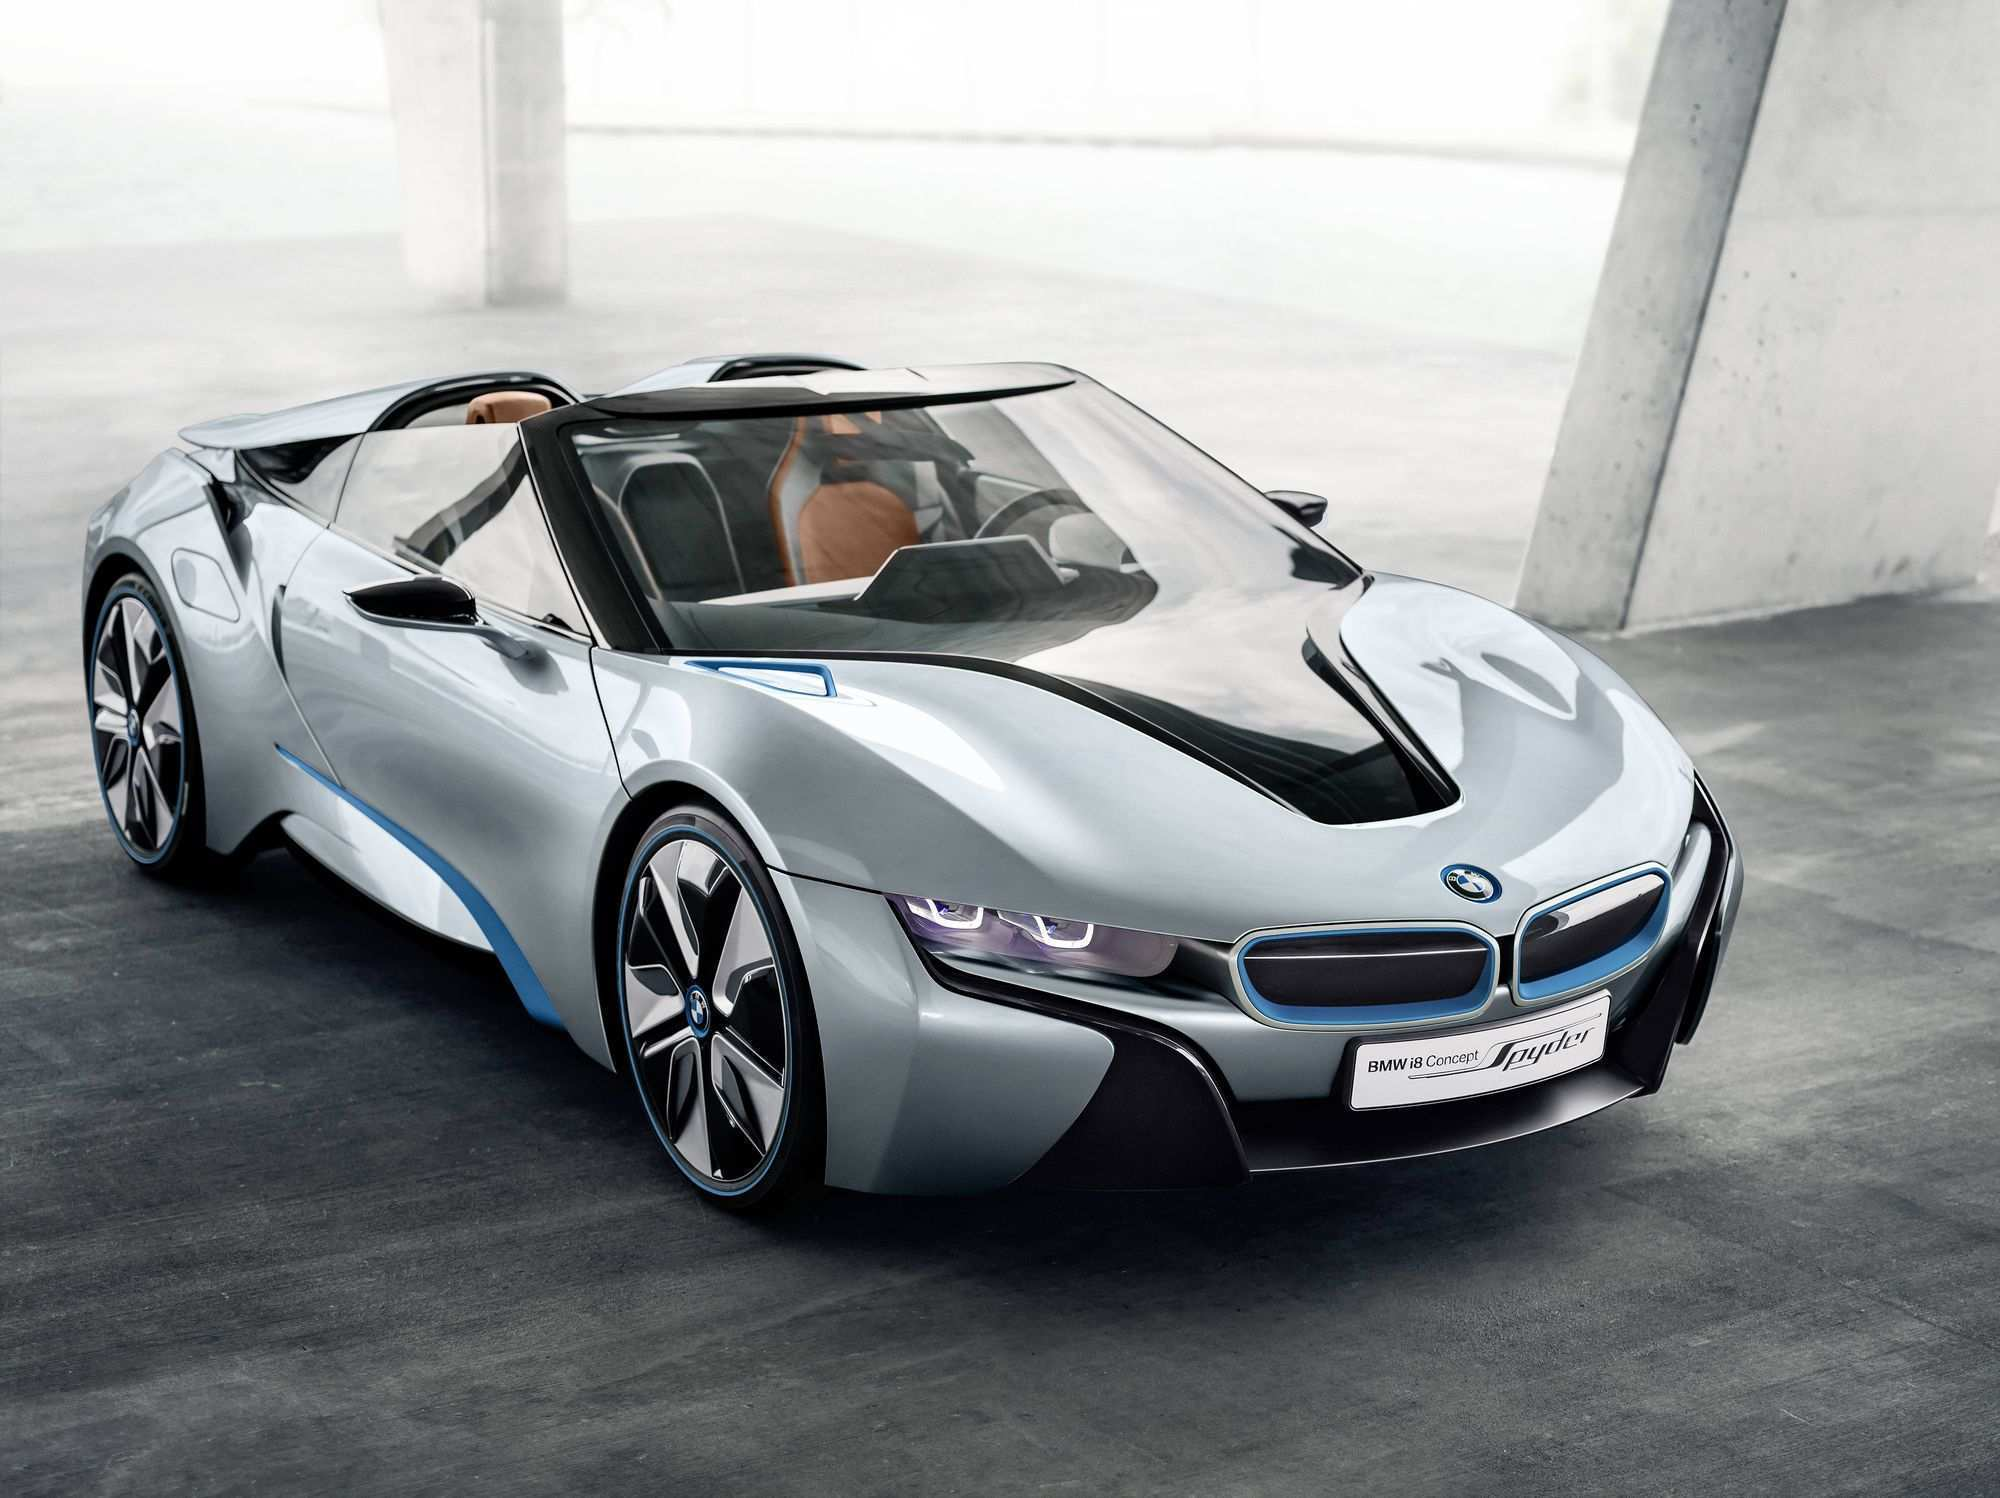 64 Gallery of 2020 Bmw I8 Pricing with 2020 Bmw I8